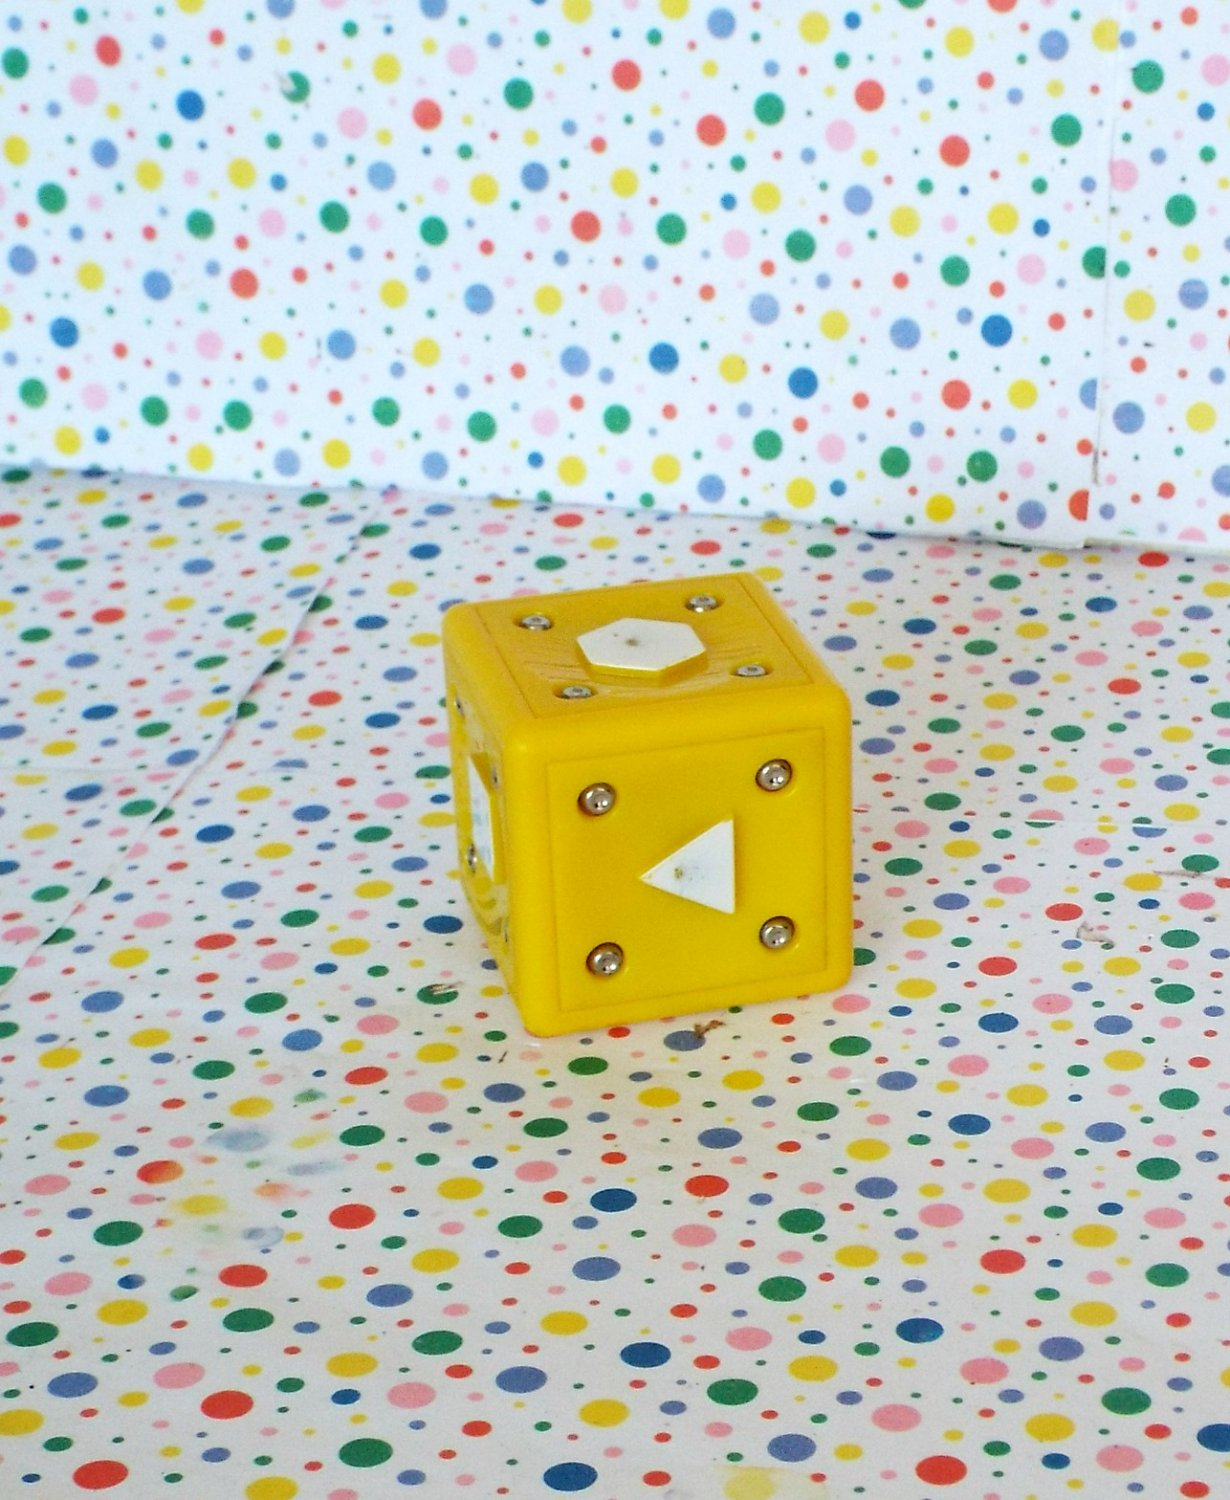 Neurosmith Music System Learning Toy Replacement Yellow Block Part